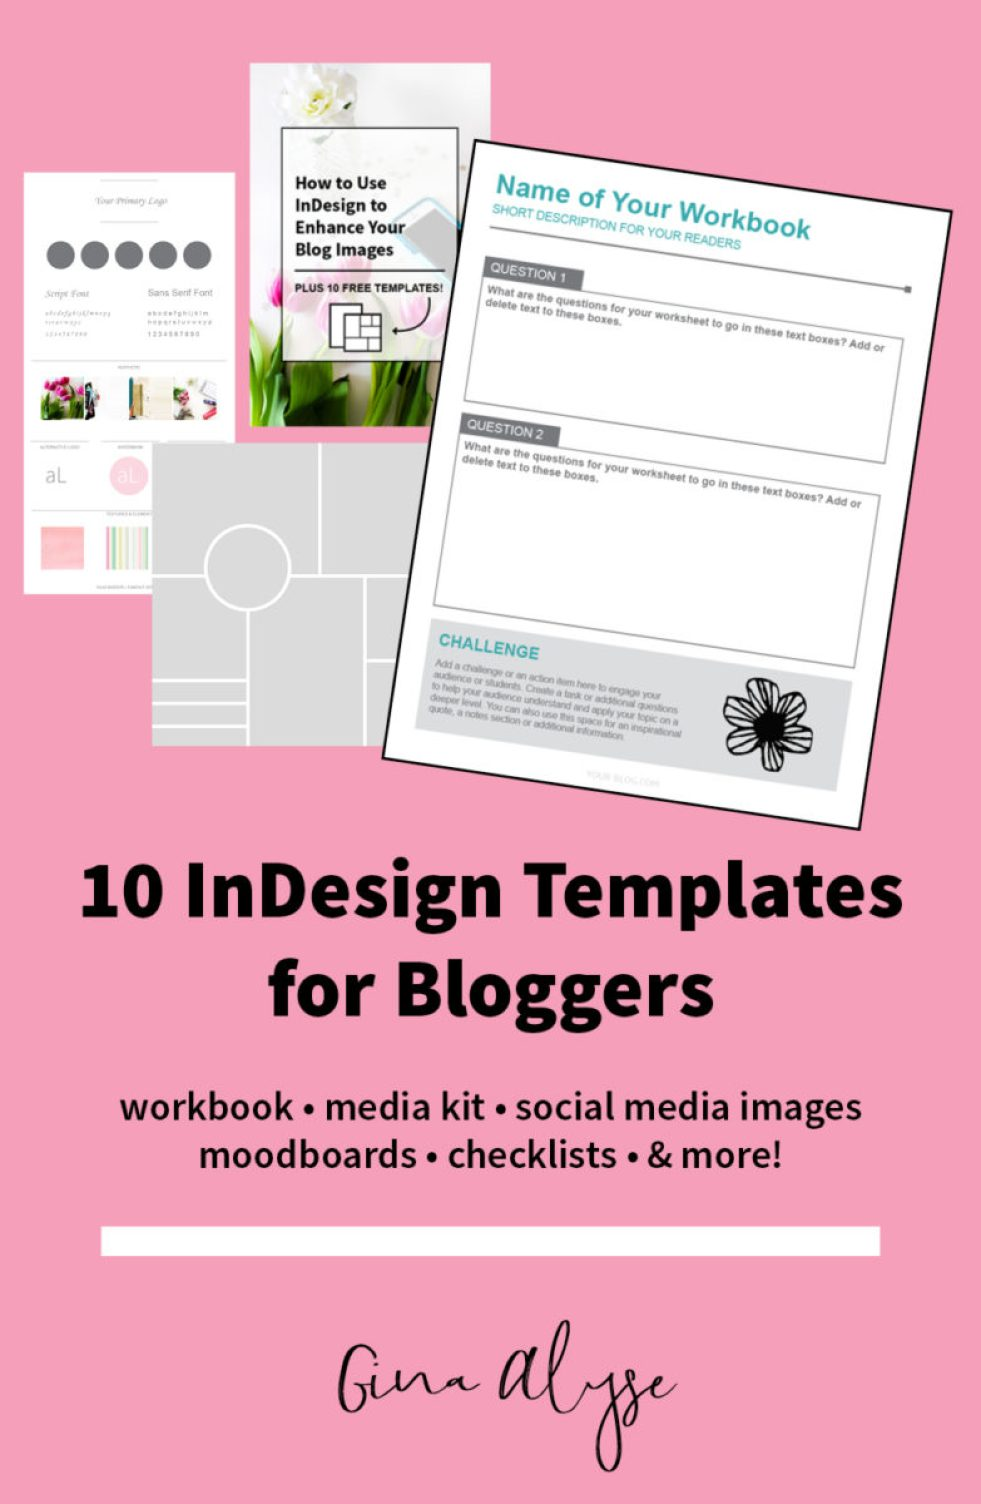 10 Free InDesign Templates for Bloggers